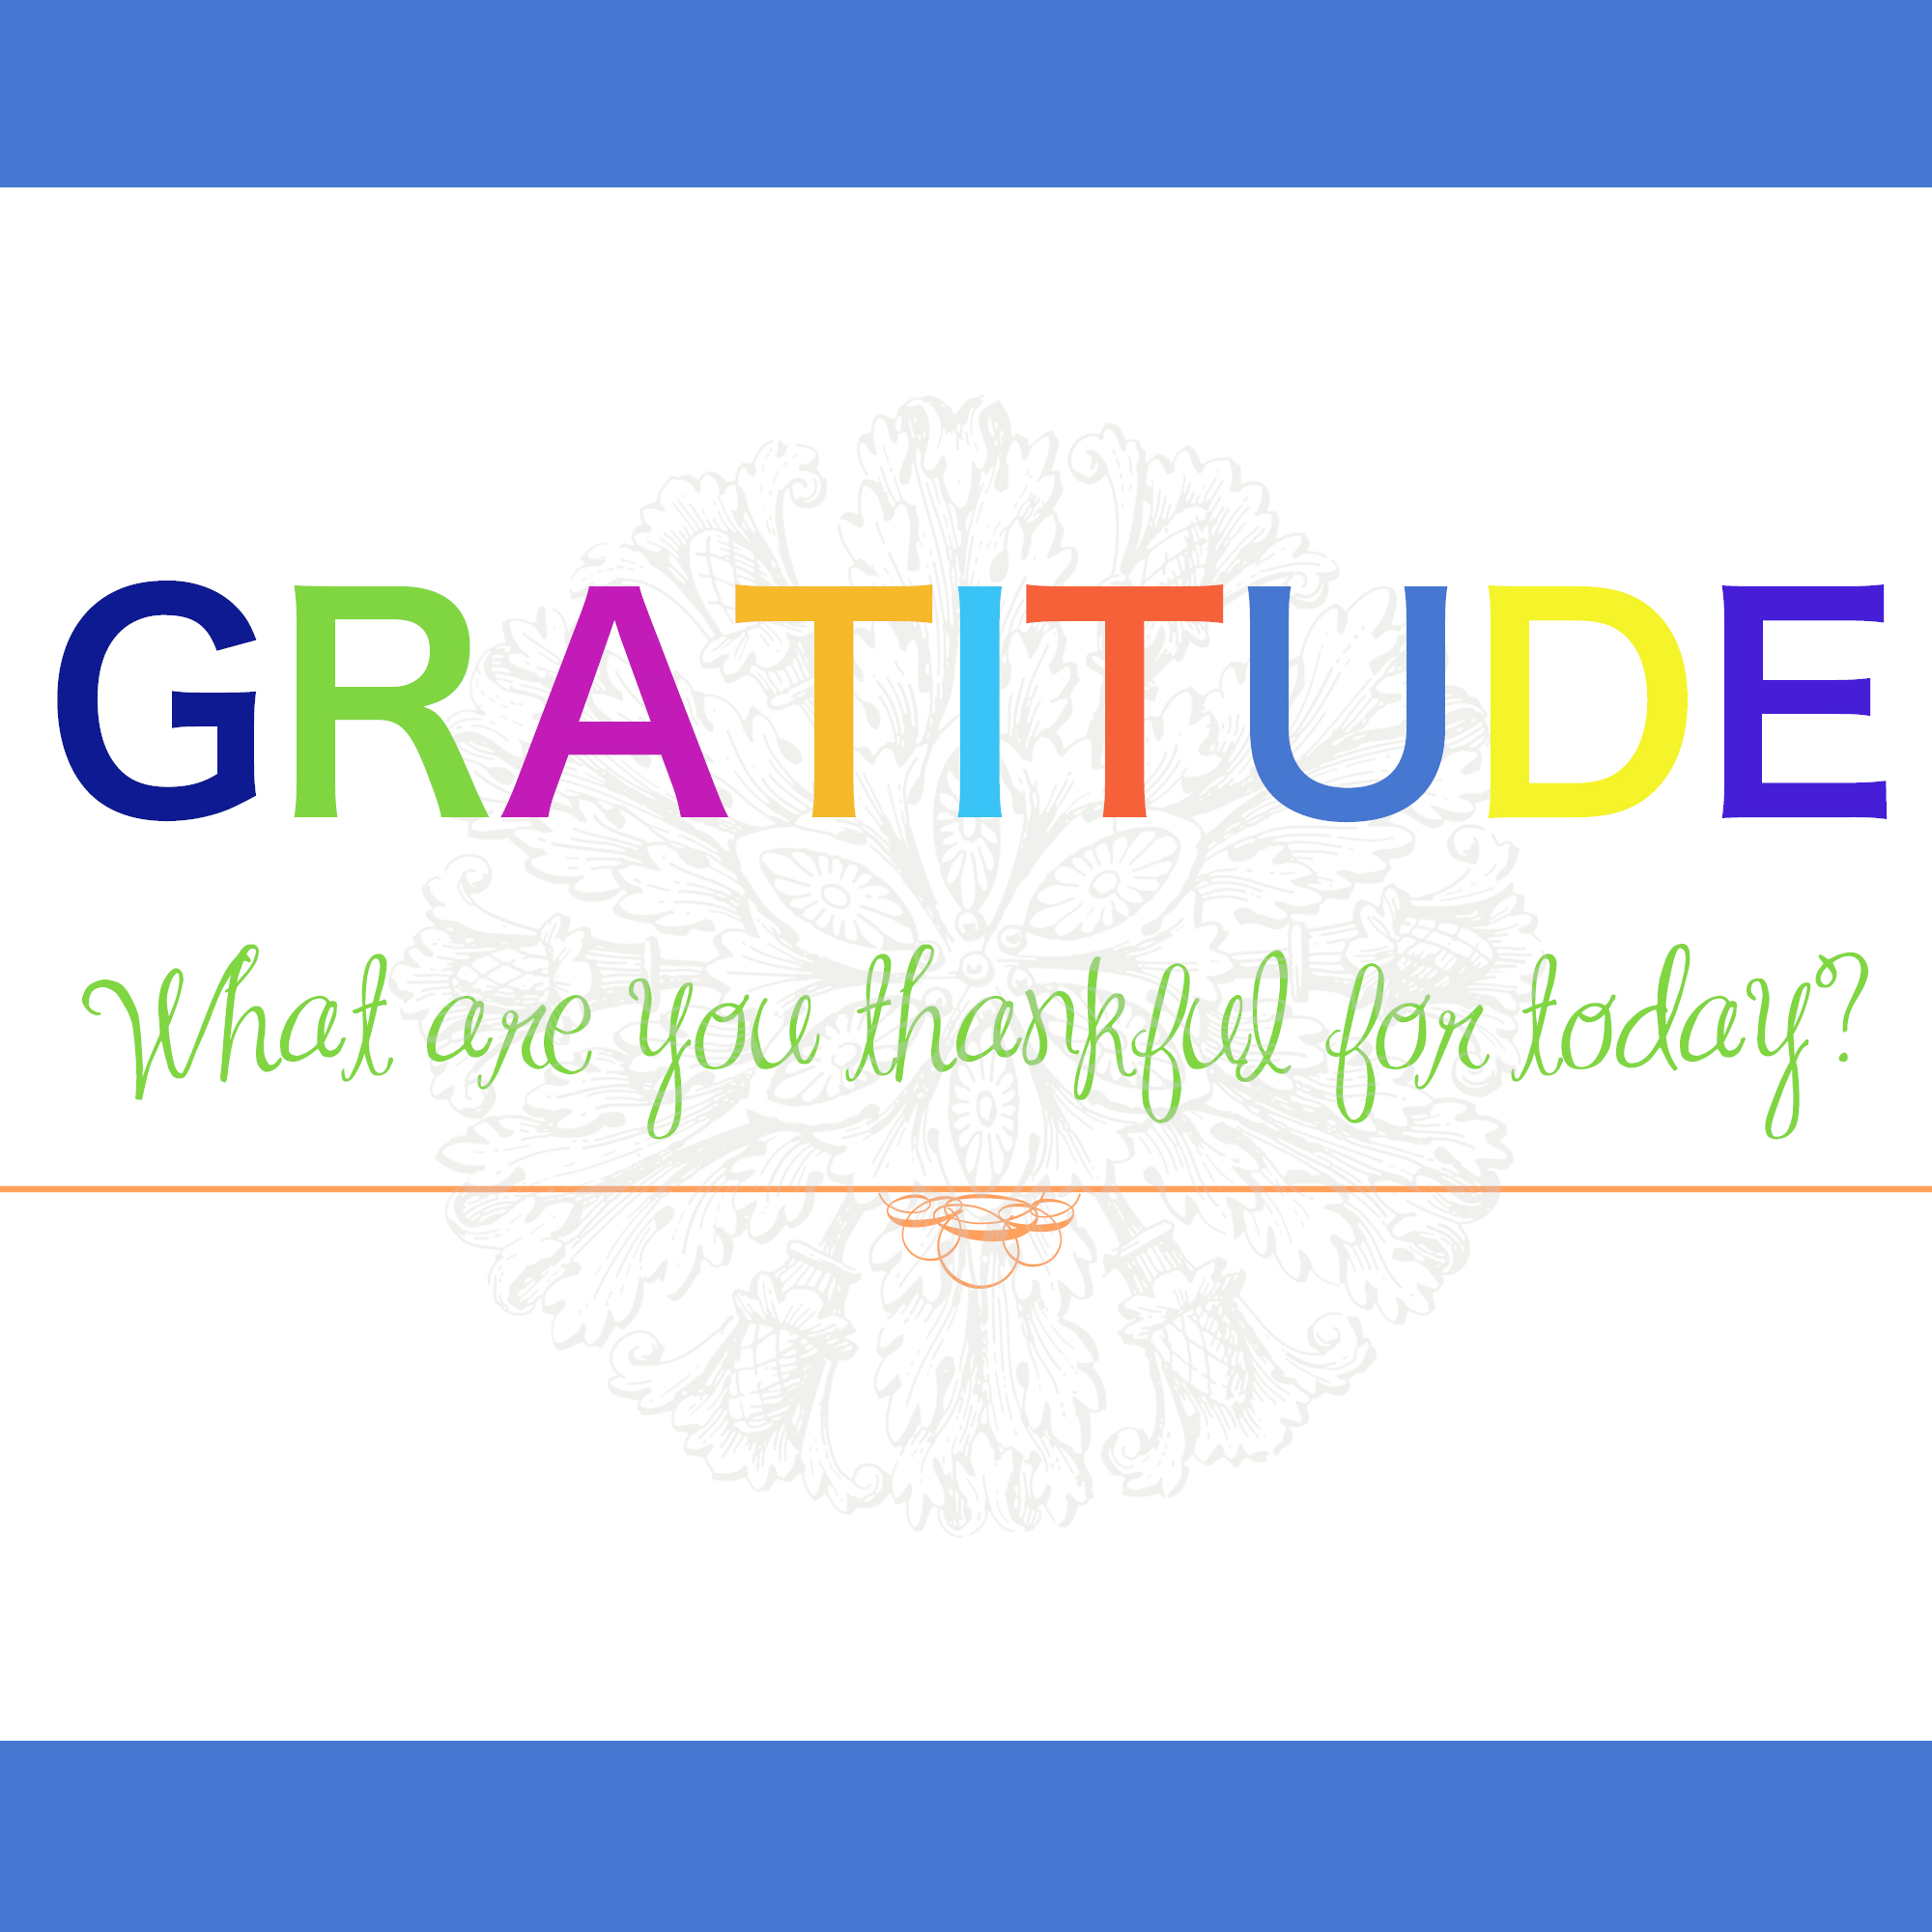 Gratitude is a key to happiness